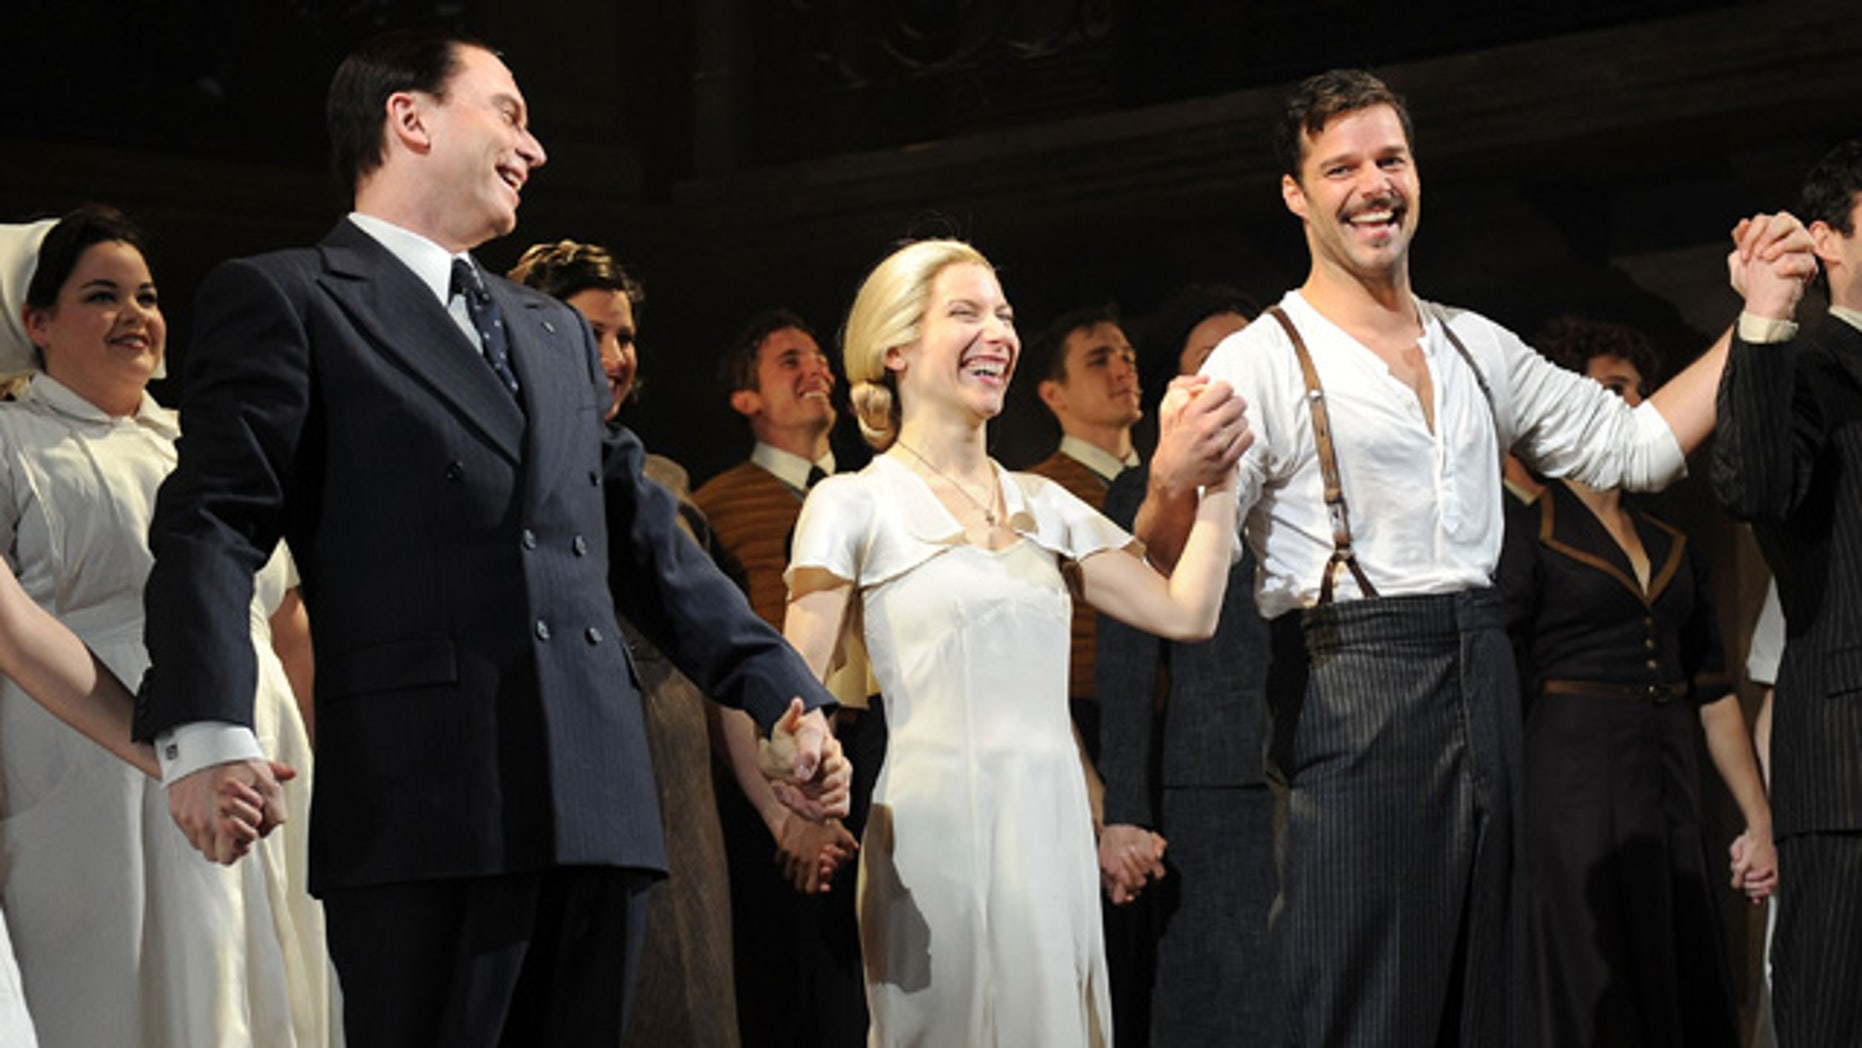 March 12, 2012: Actors Michael Cerveris, Elena Roger and Ricky Martin attend the Broadway revival curtain call and press conference at the Marriott Marquis Hotel in New York City.